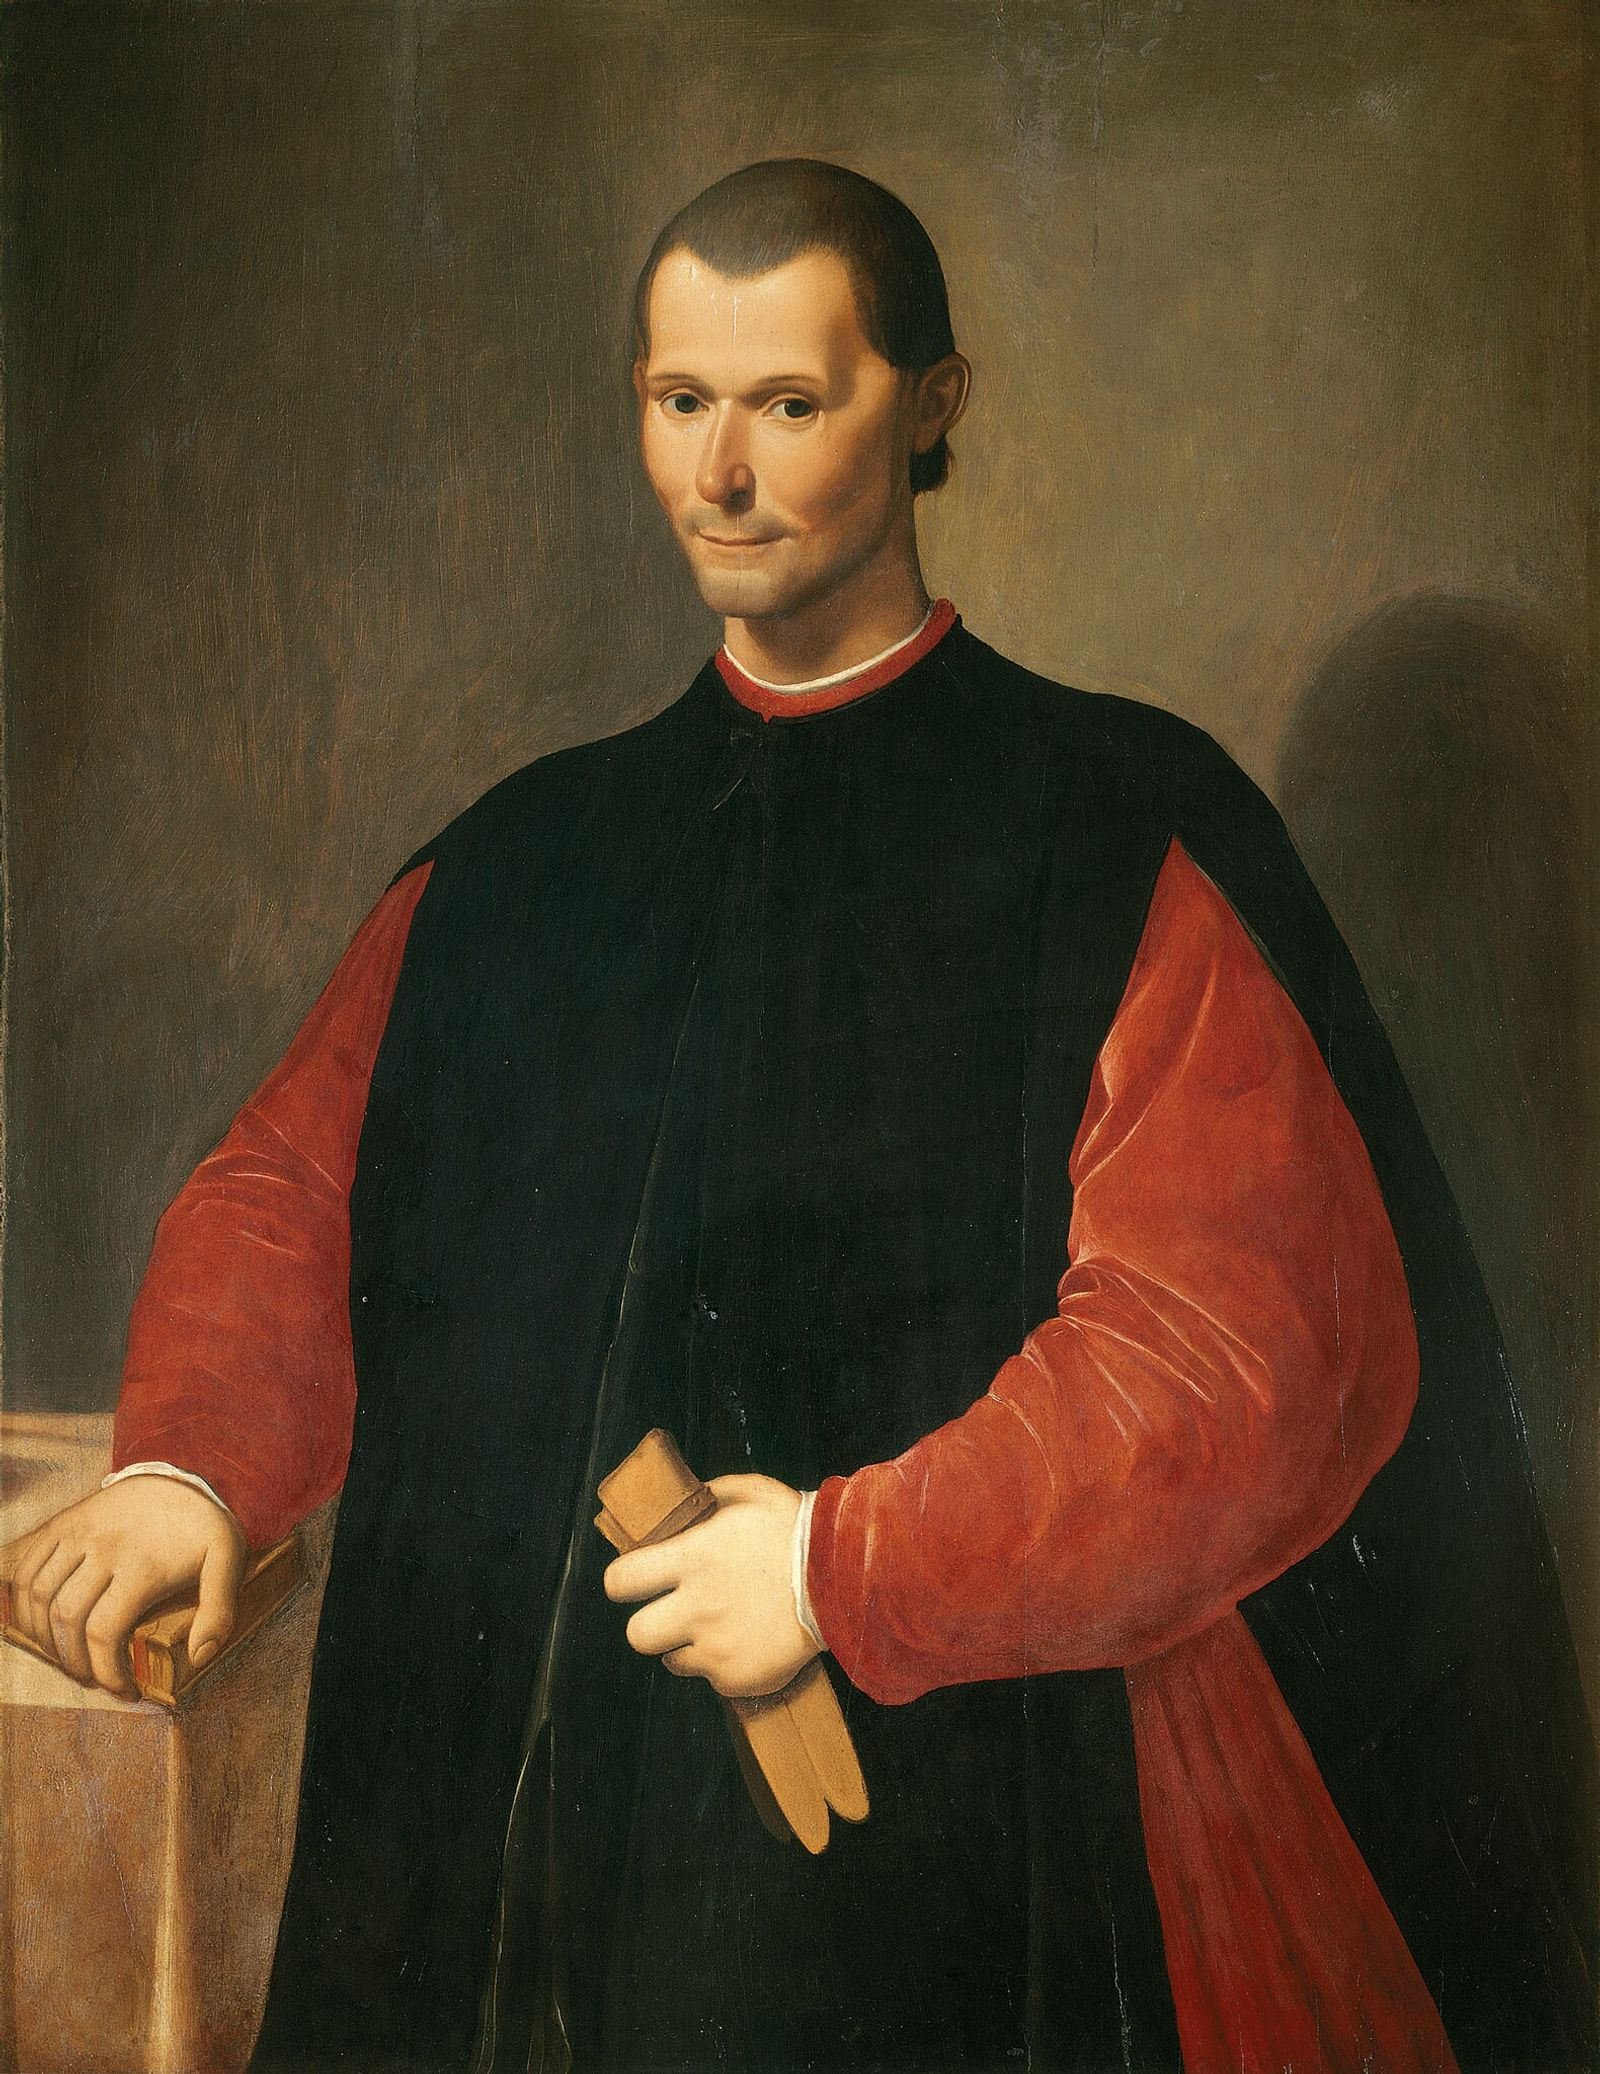 Santi di Tito's portrait of Machiavelli was painted after the author's death and hangs in the ...